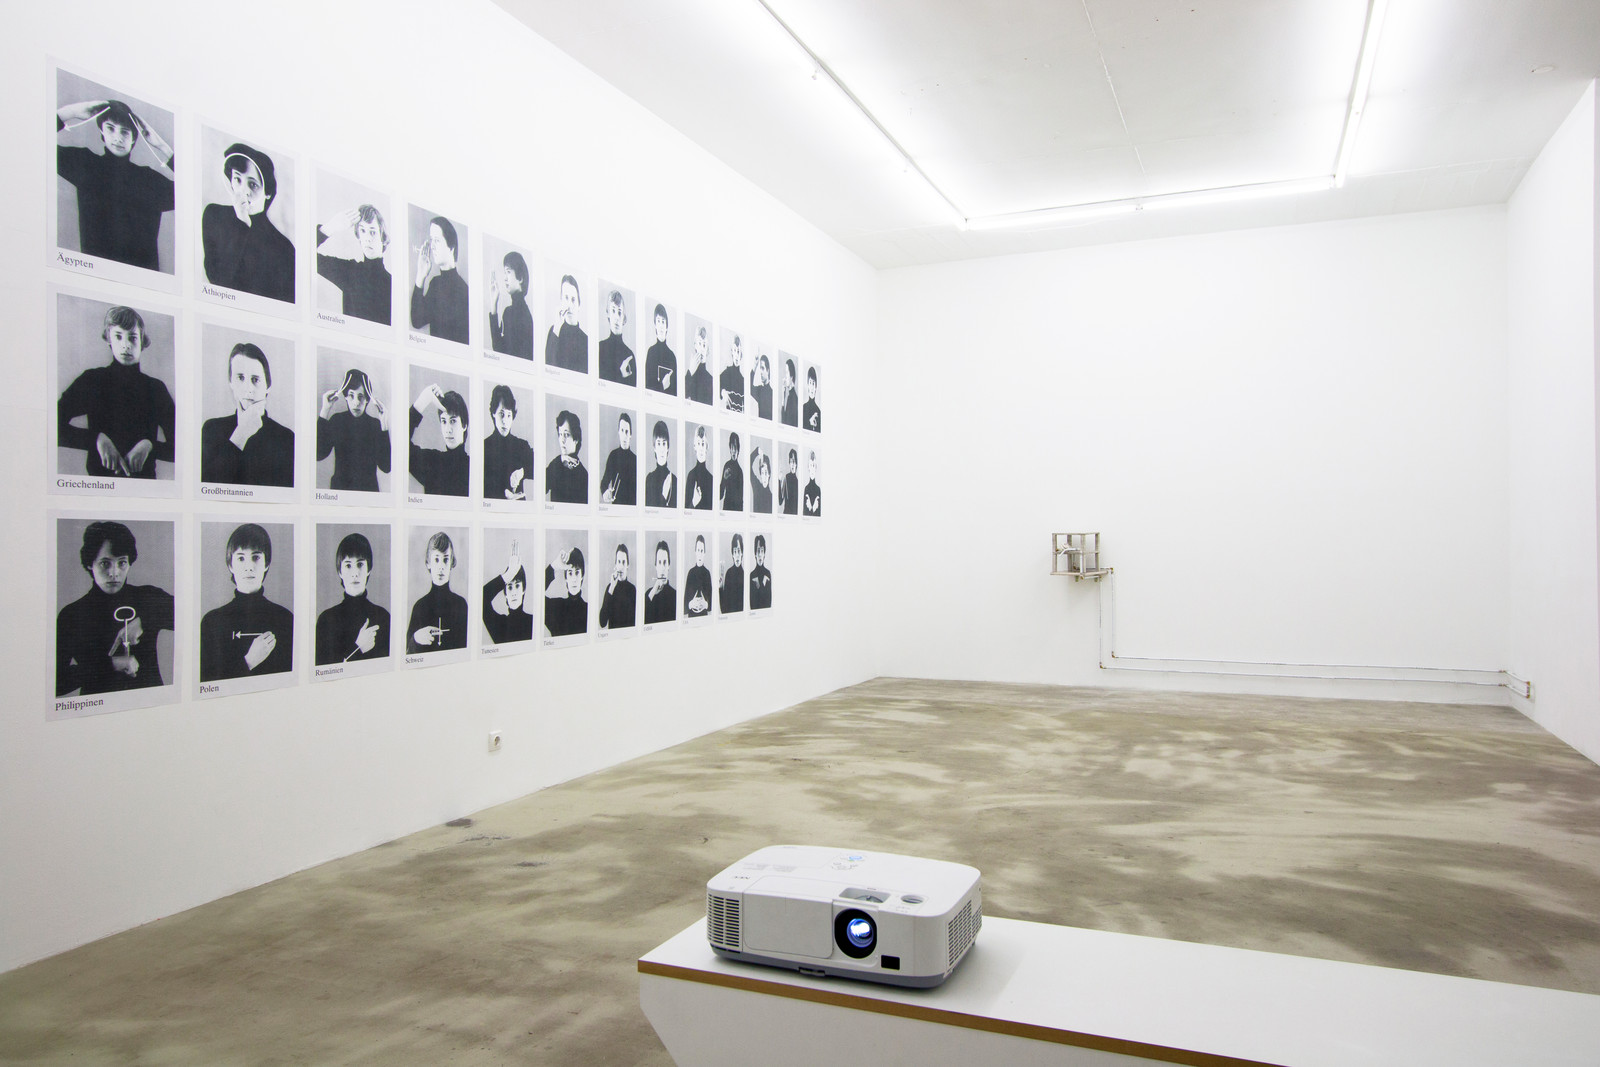 4-soy-capitan-the_order_of_things-installation view-3